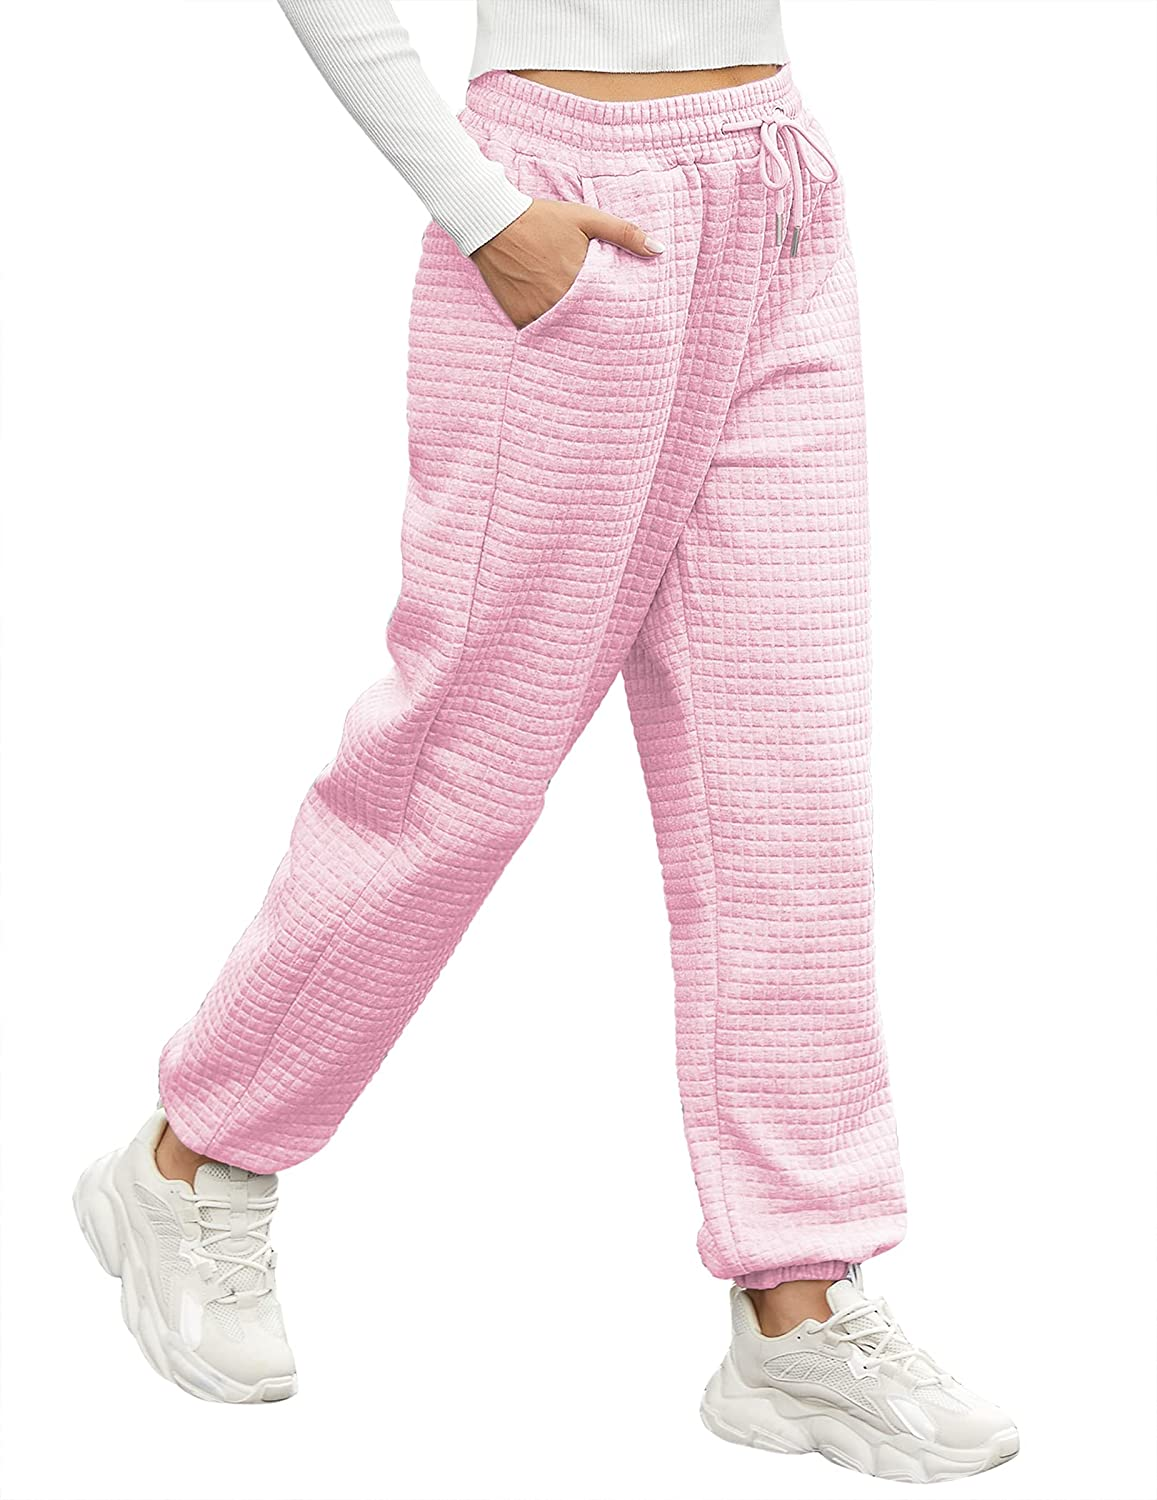 Hotouch Sweatpants for Women with Pockets High Waist Baggy Jogger Pants Cinch Bottom Sweats Pants(S-XXL)